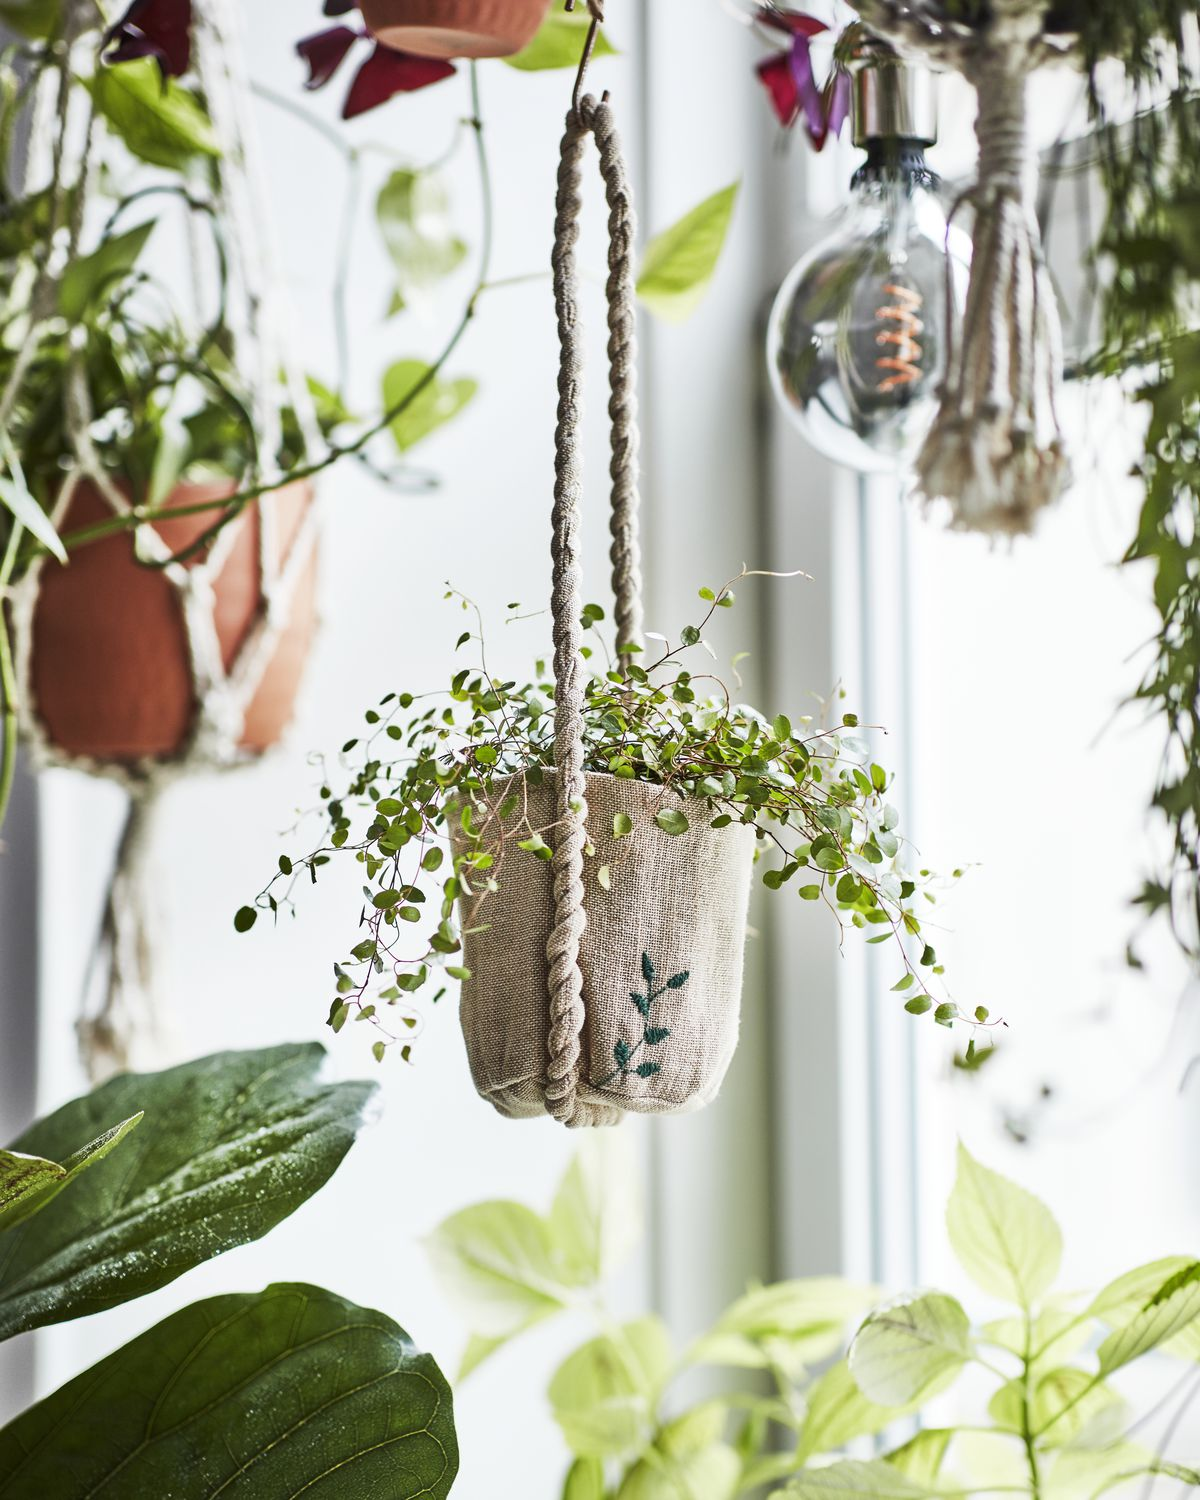 Woven basket hanging from hook.